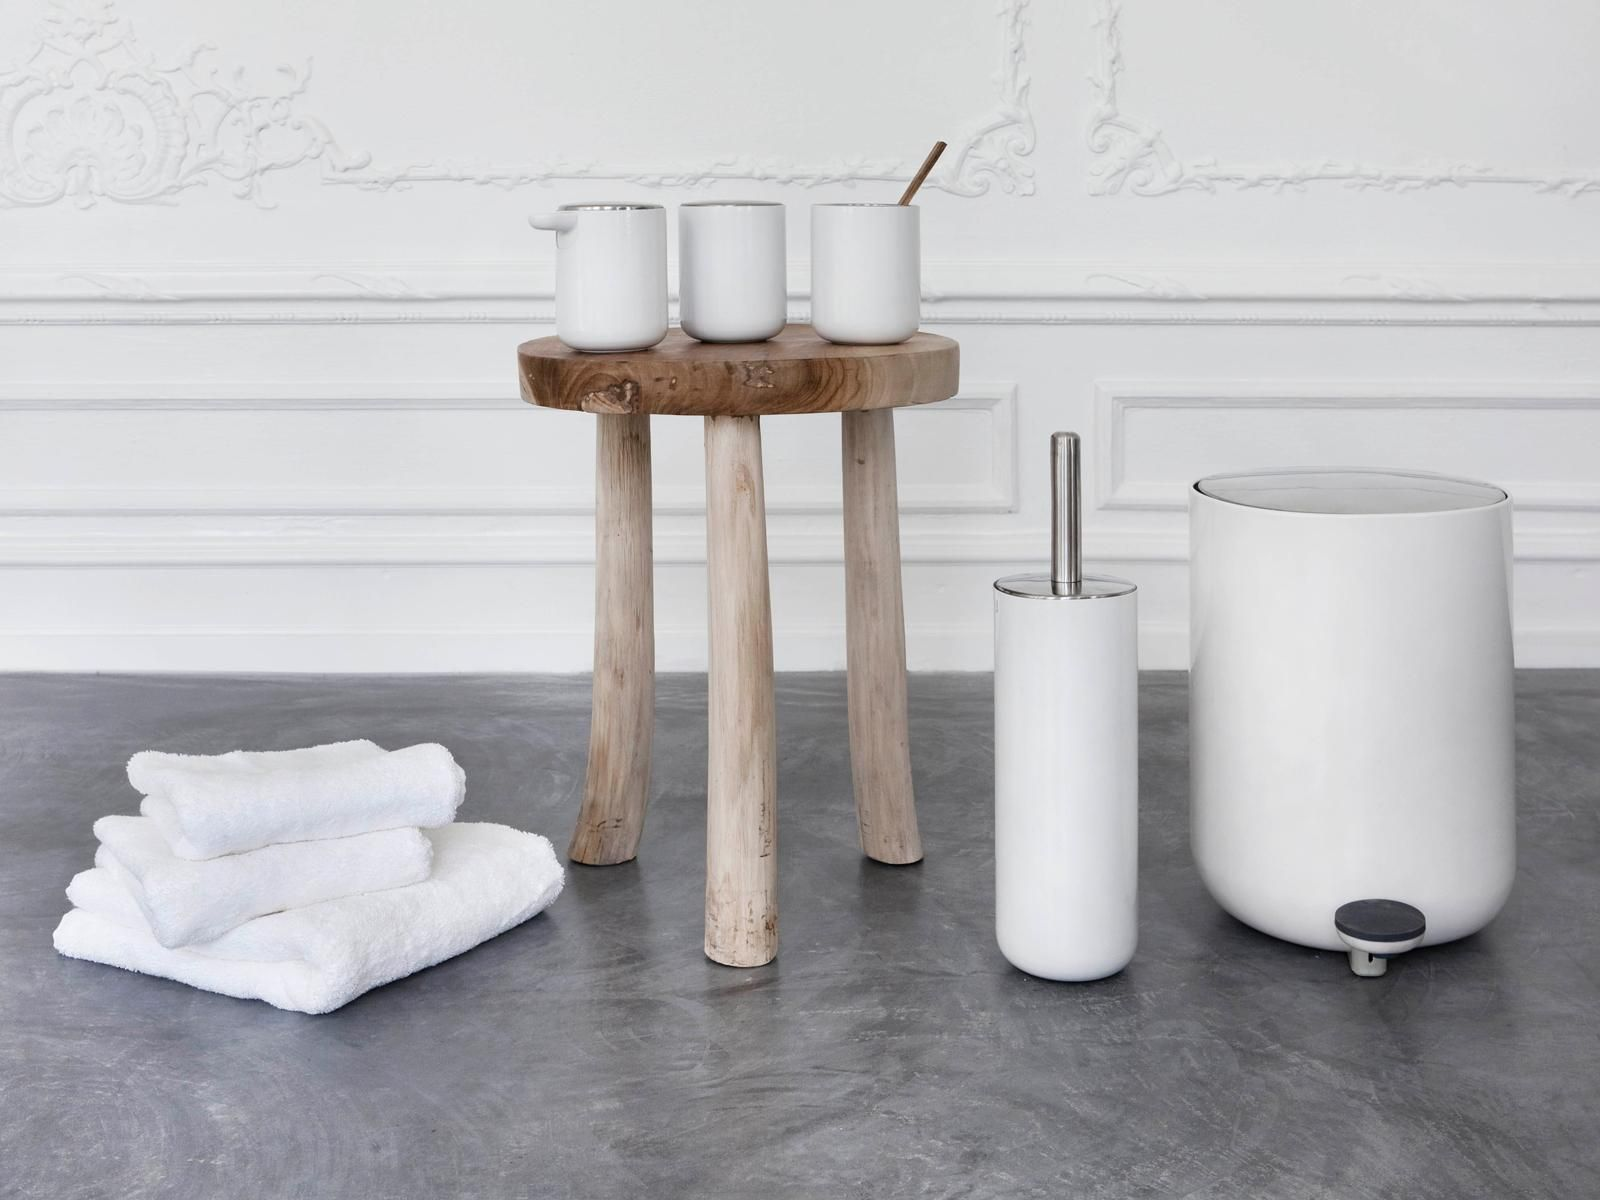 Bathroom Set | Scandinavian, Bath accessories and Lights